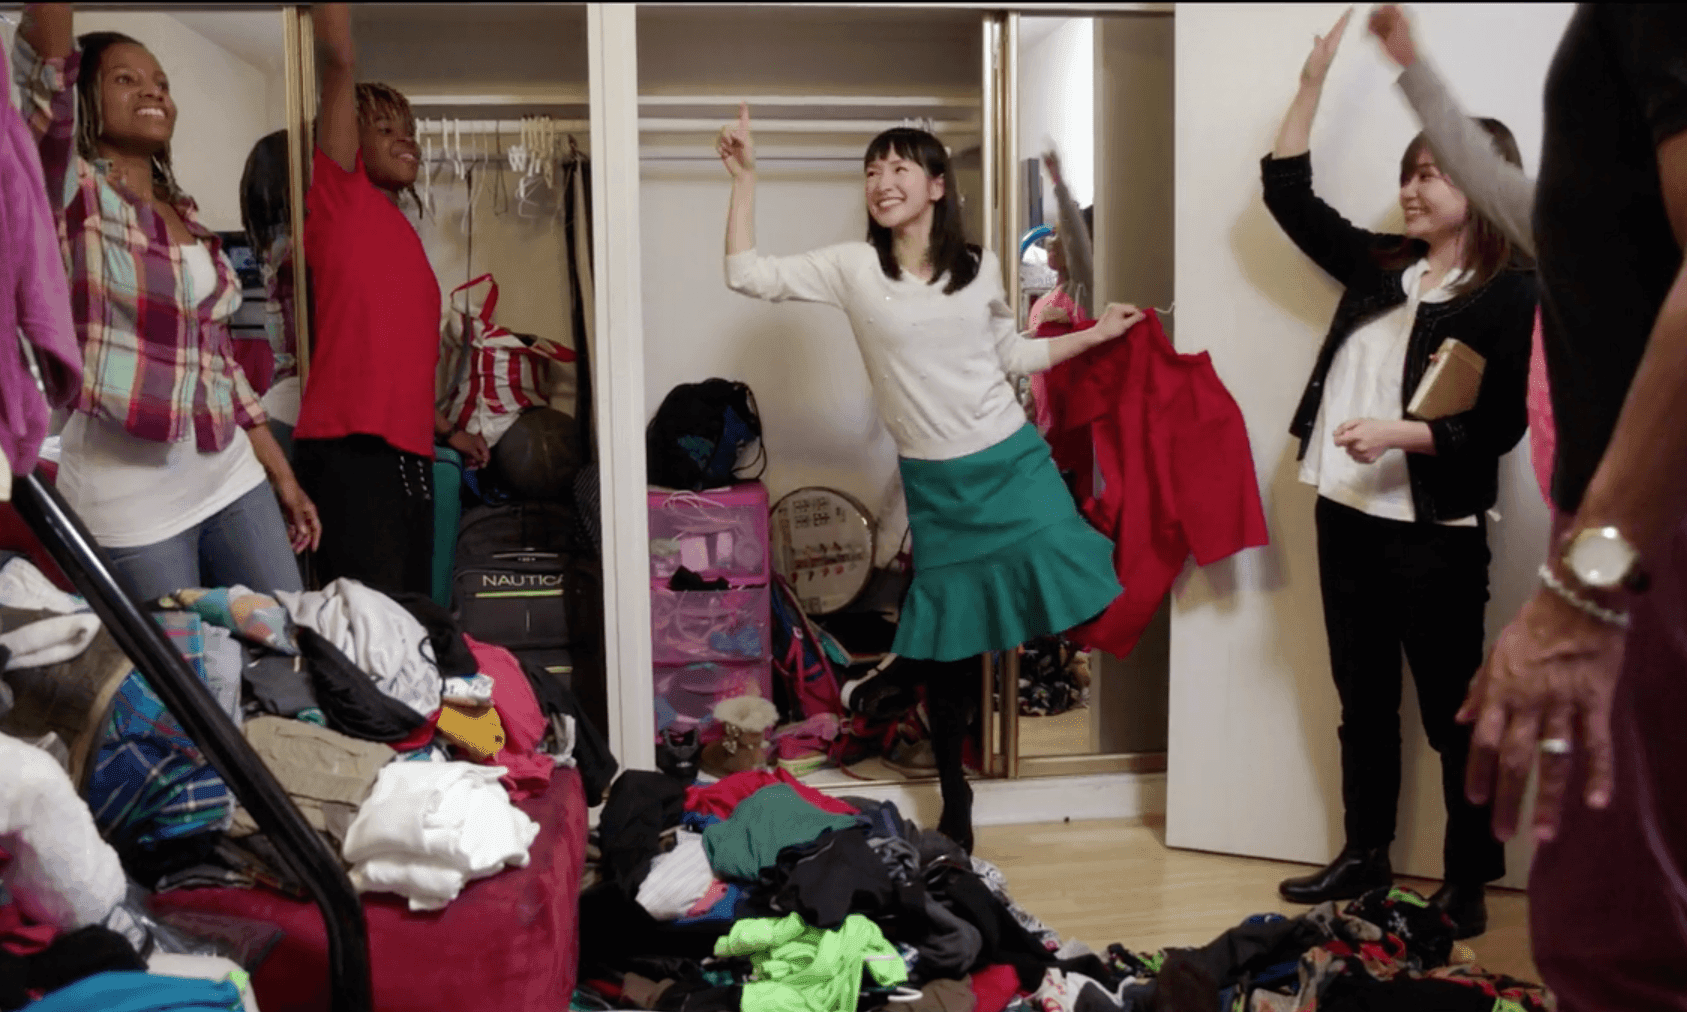 Marie Kondo, you know what would spark joy? Buying less crap